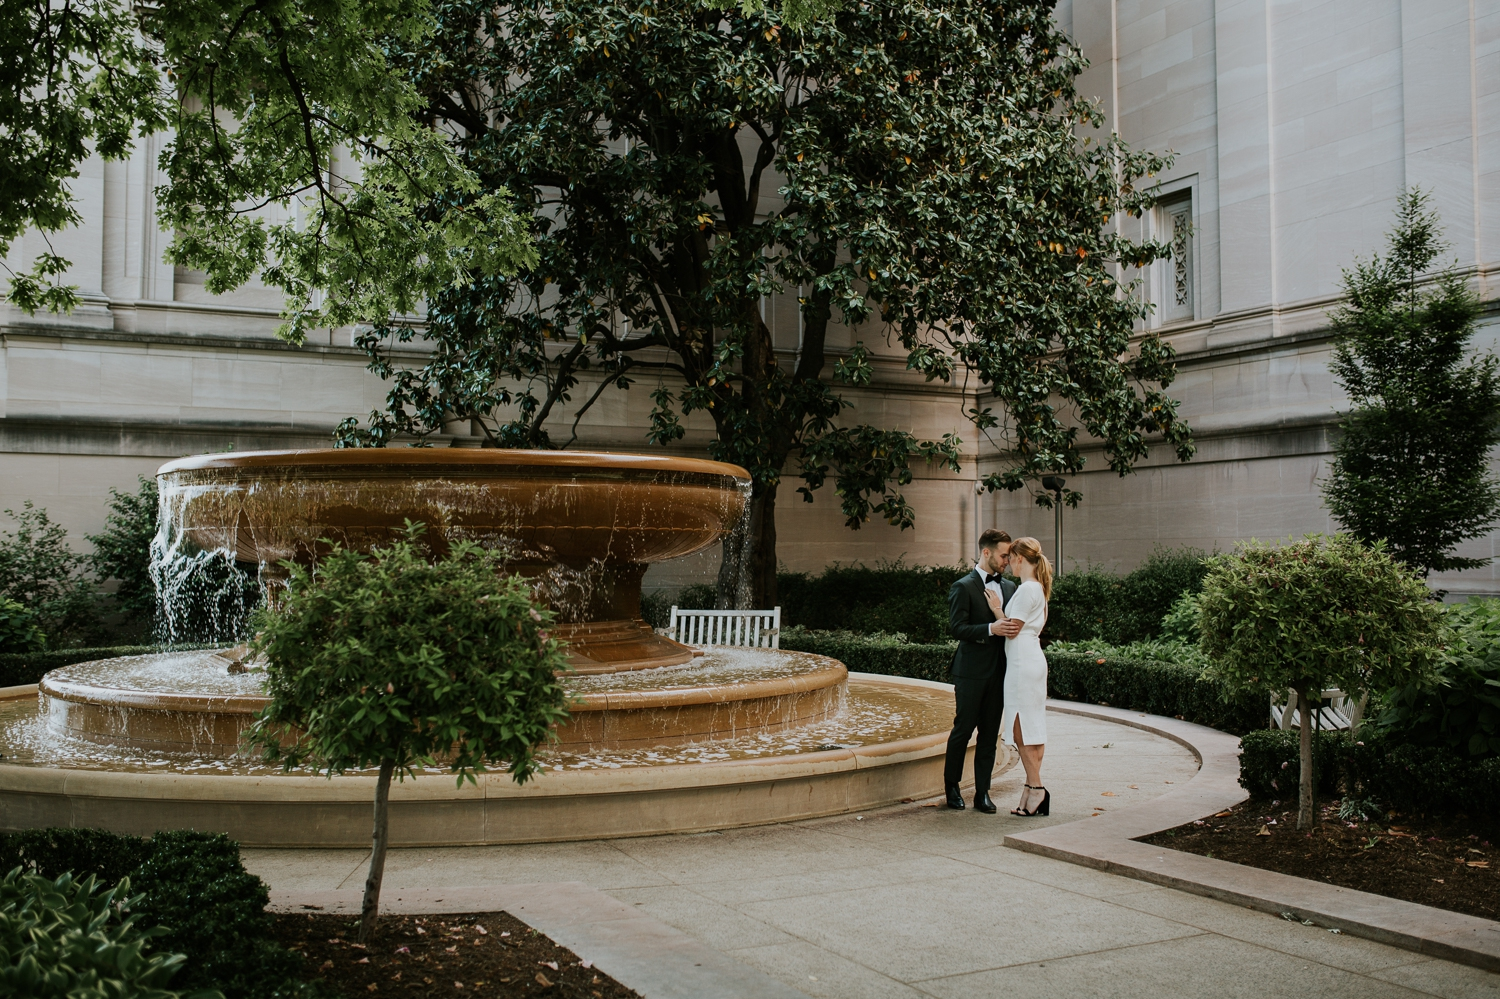 washington-dc-hotel-hive-elopement-wedding-photographer 86.jpg